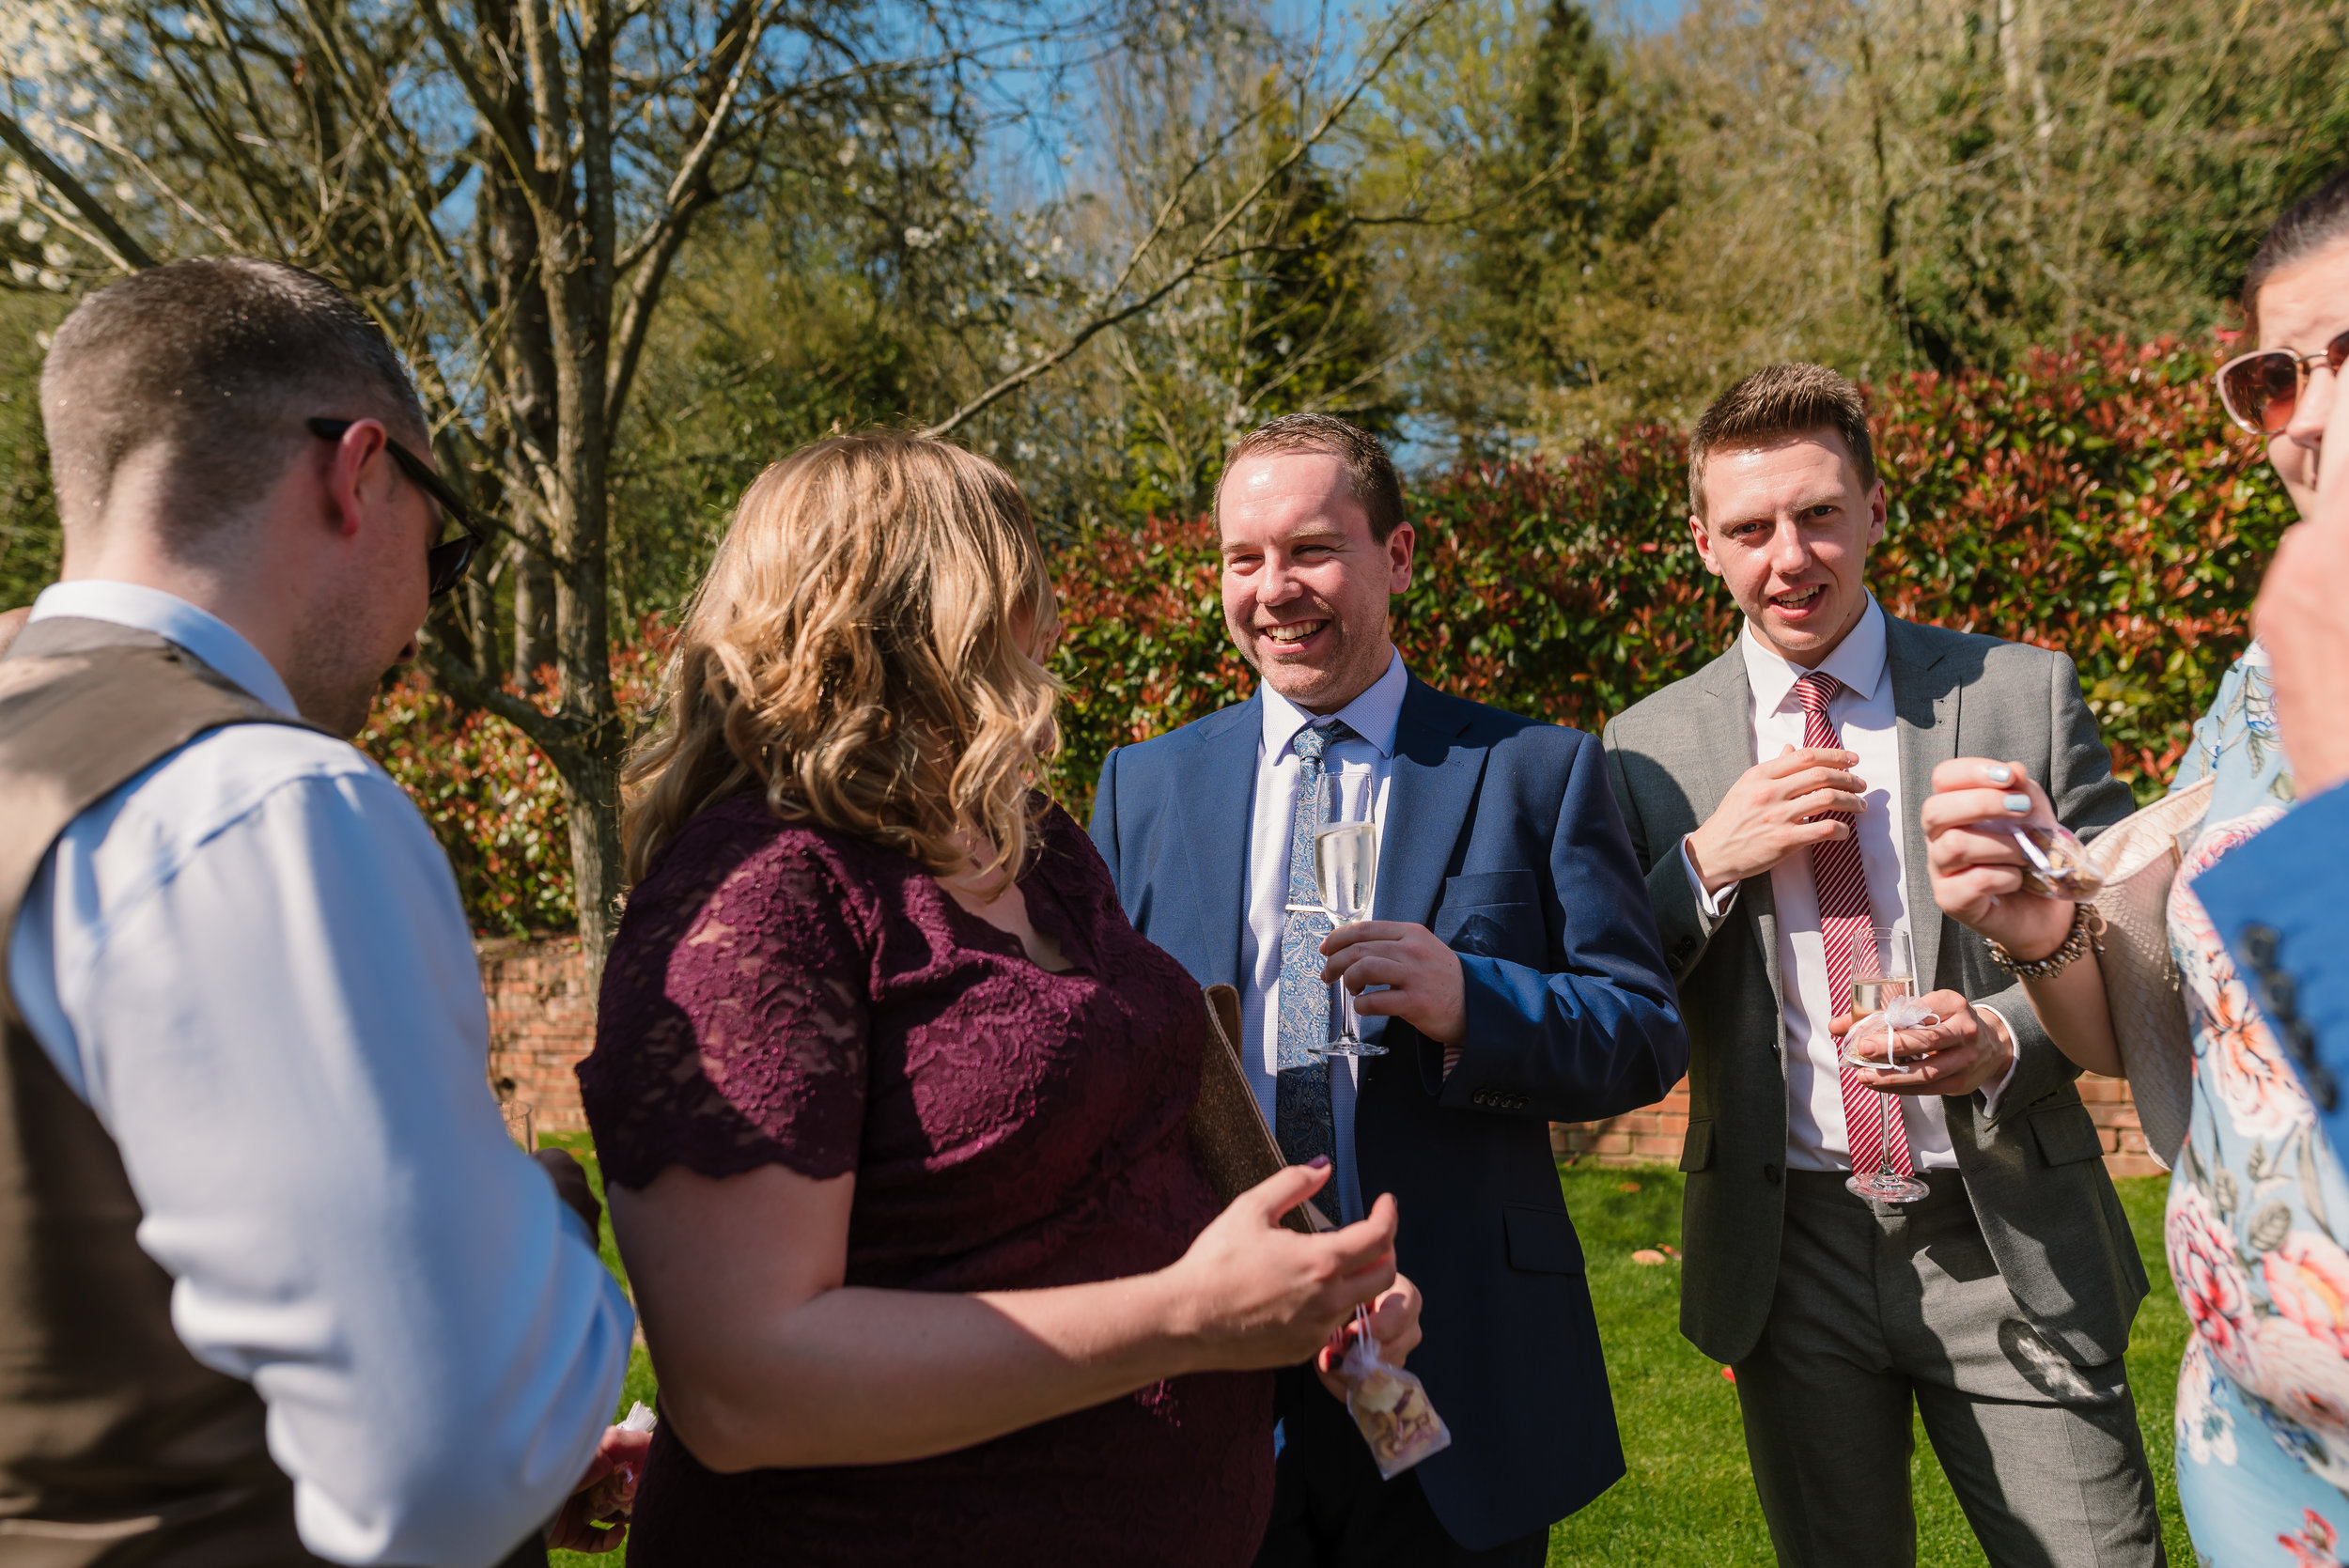 Sarah-Fishlock-Photography : Hampshire-wedding-photographer-hampshire : fleet-wedding-photographer-fleet : Millbridge-Court-Wedding-Photographer : Millbridge-Court-Wedding-Venue : Surrey-wedding-venue